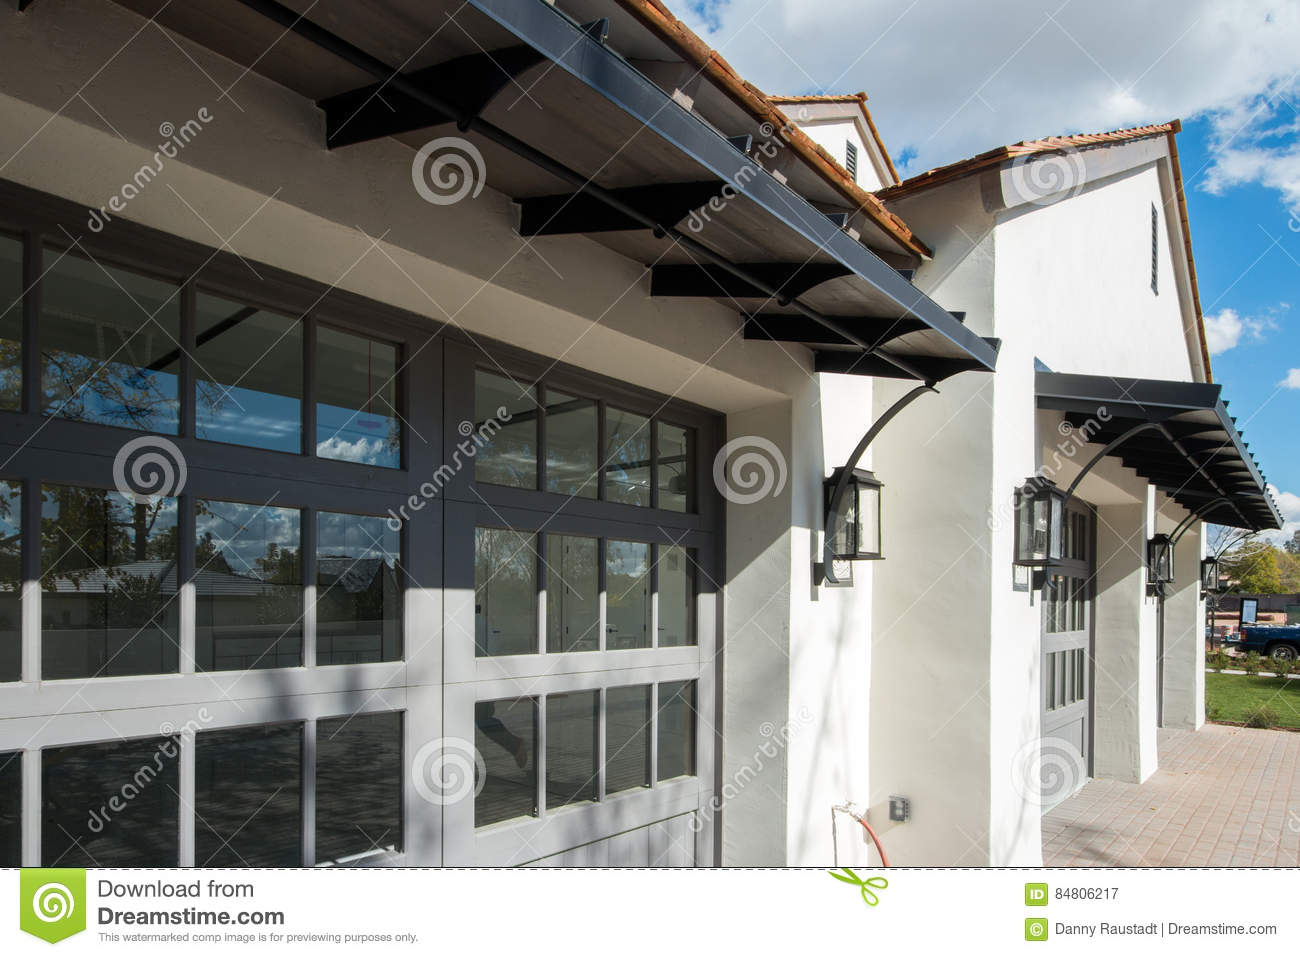 Download New Home With Four Car Garage Stock Image   Image Of Desert, Bank: